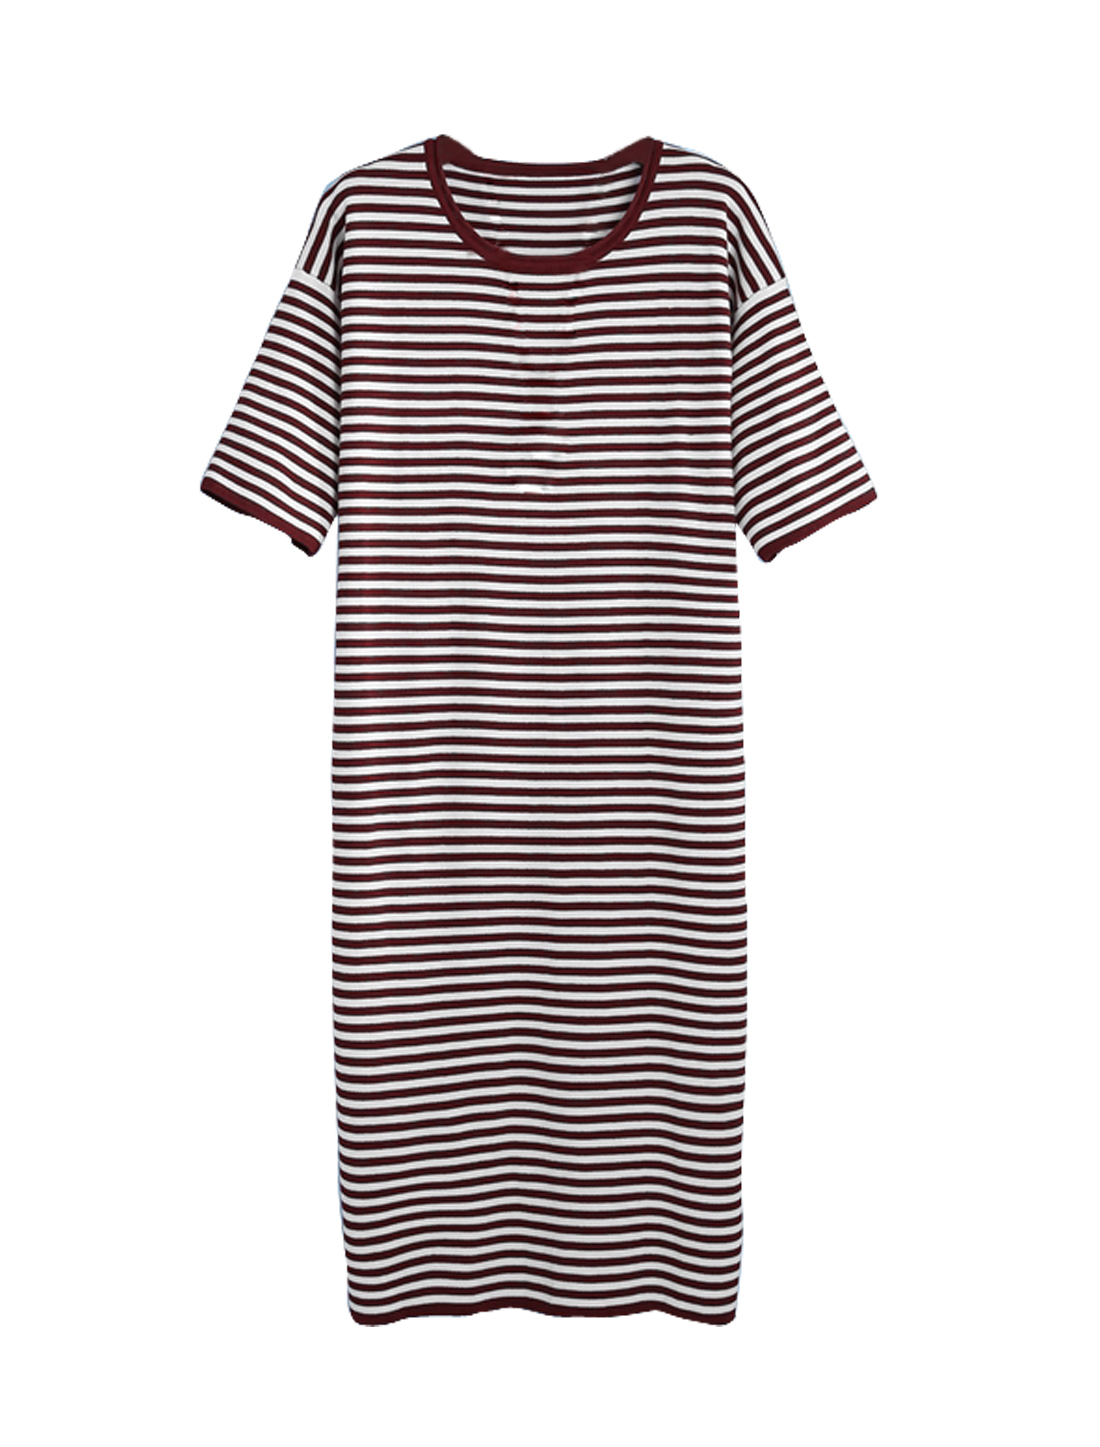 Women Stripes 3/4 Sleeves Round Neck Knitted Shift Dress Burgundy L